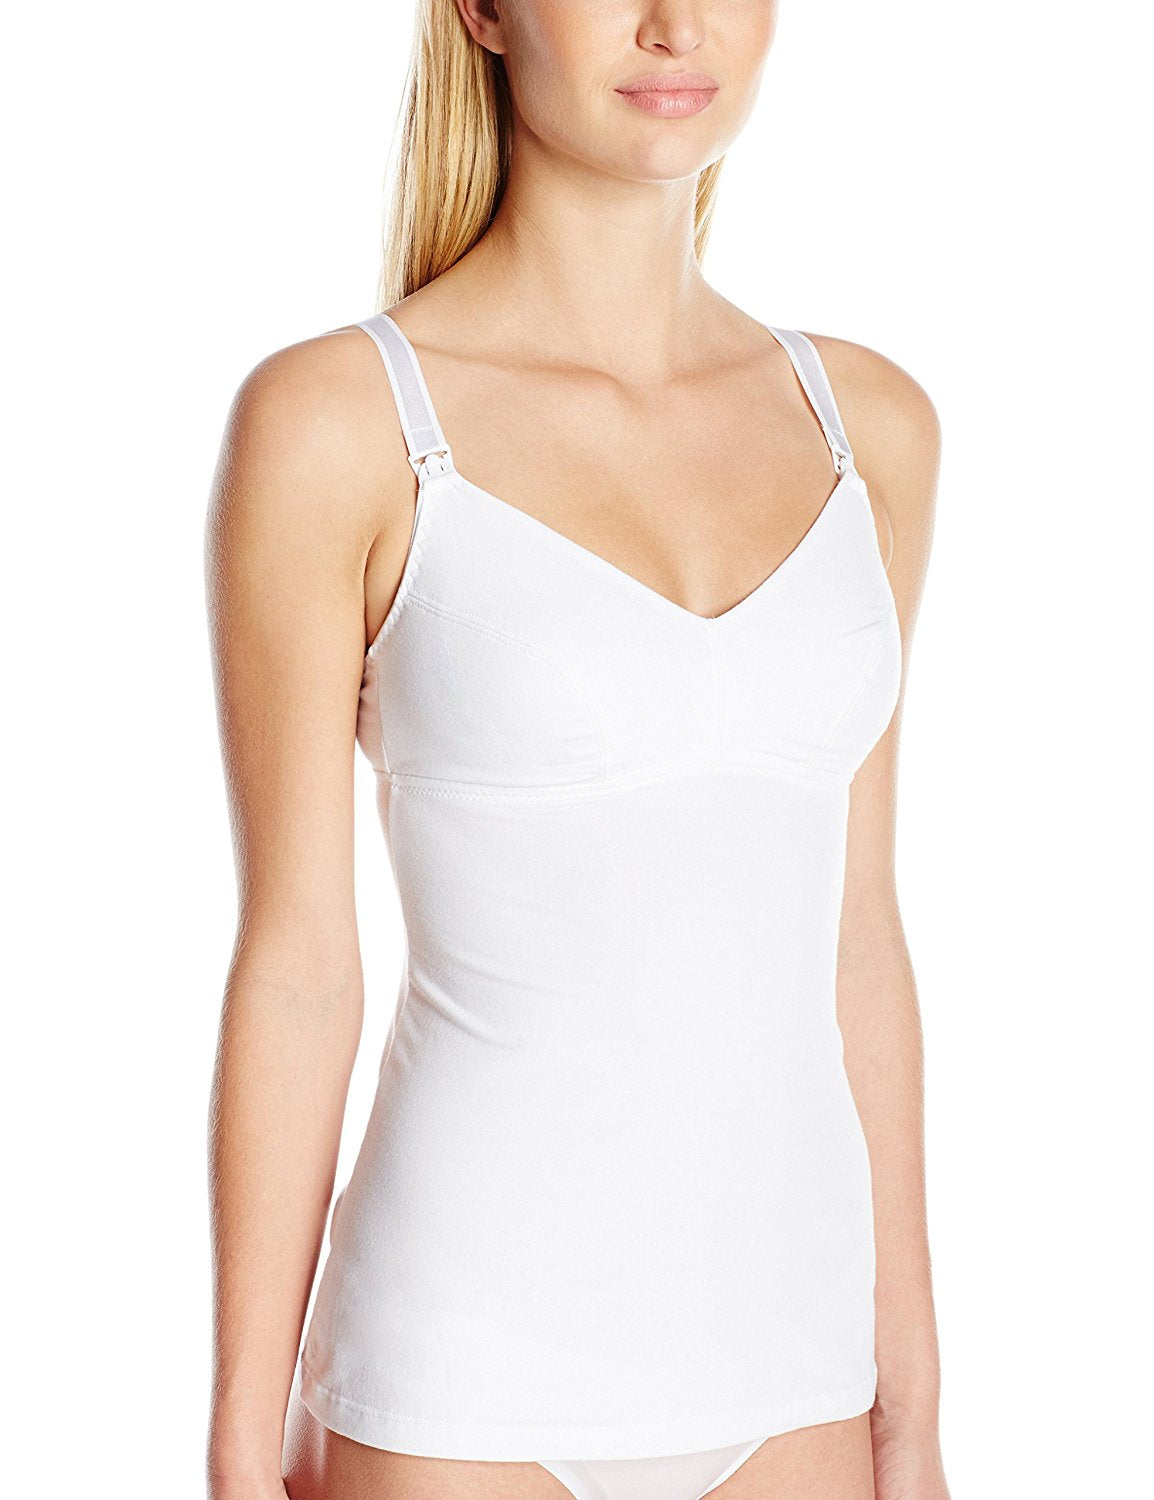 86976 - Maternity nursing camisole in white